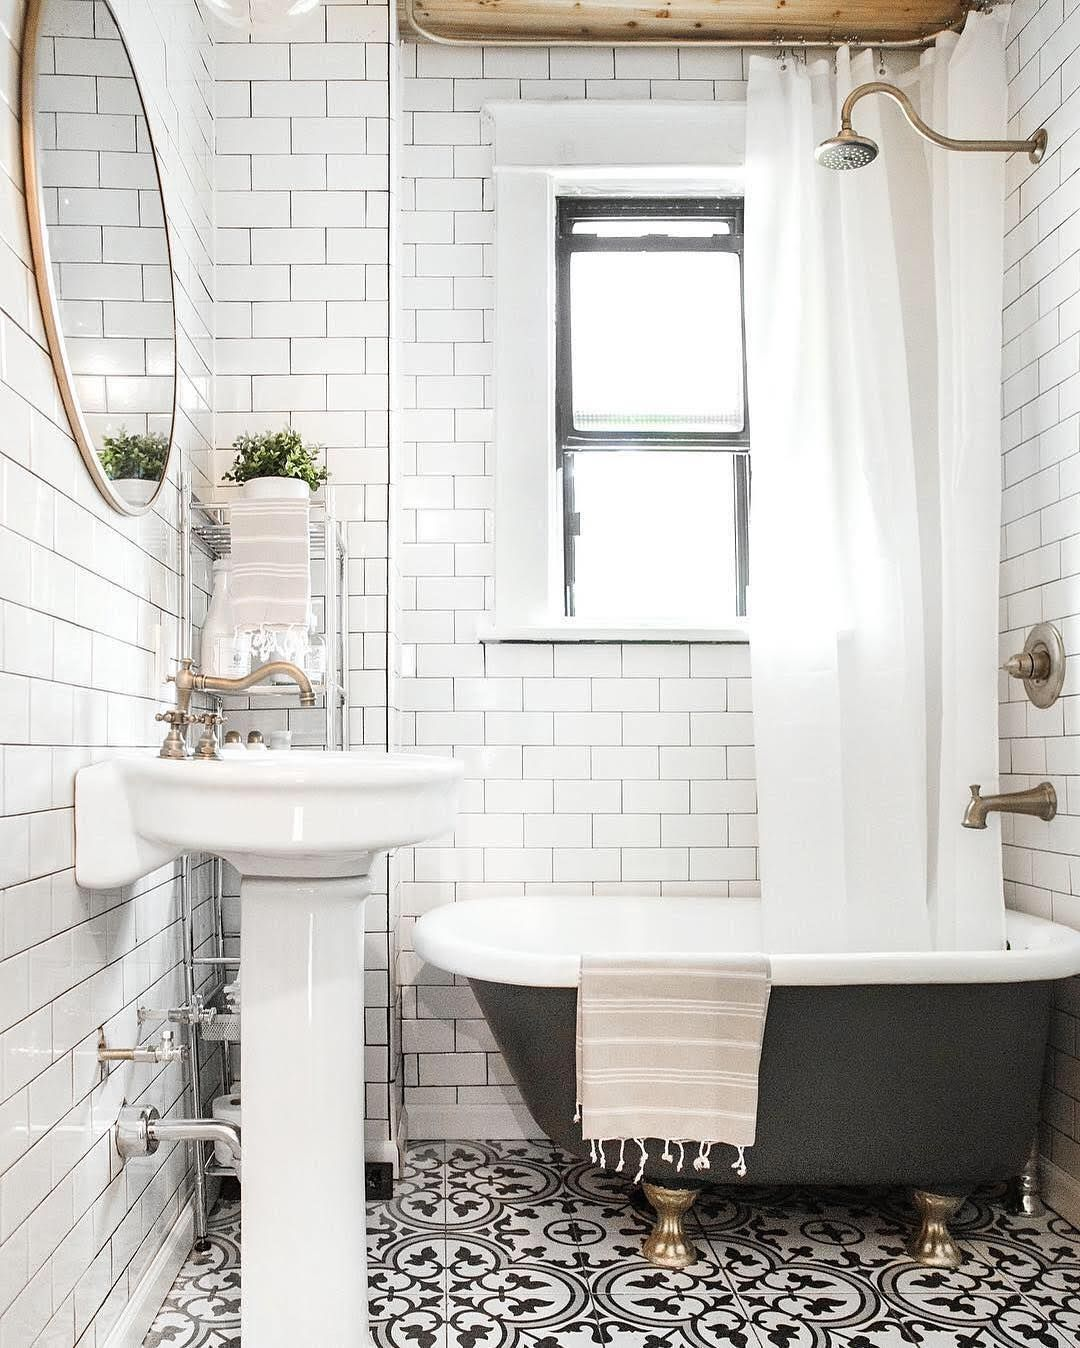 High Quality Freshen Up Your Bathroom In 2017 With This Mixed Tile Trend | Brit + Co